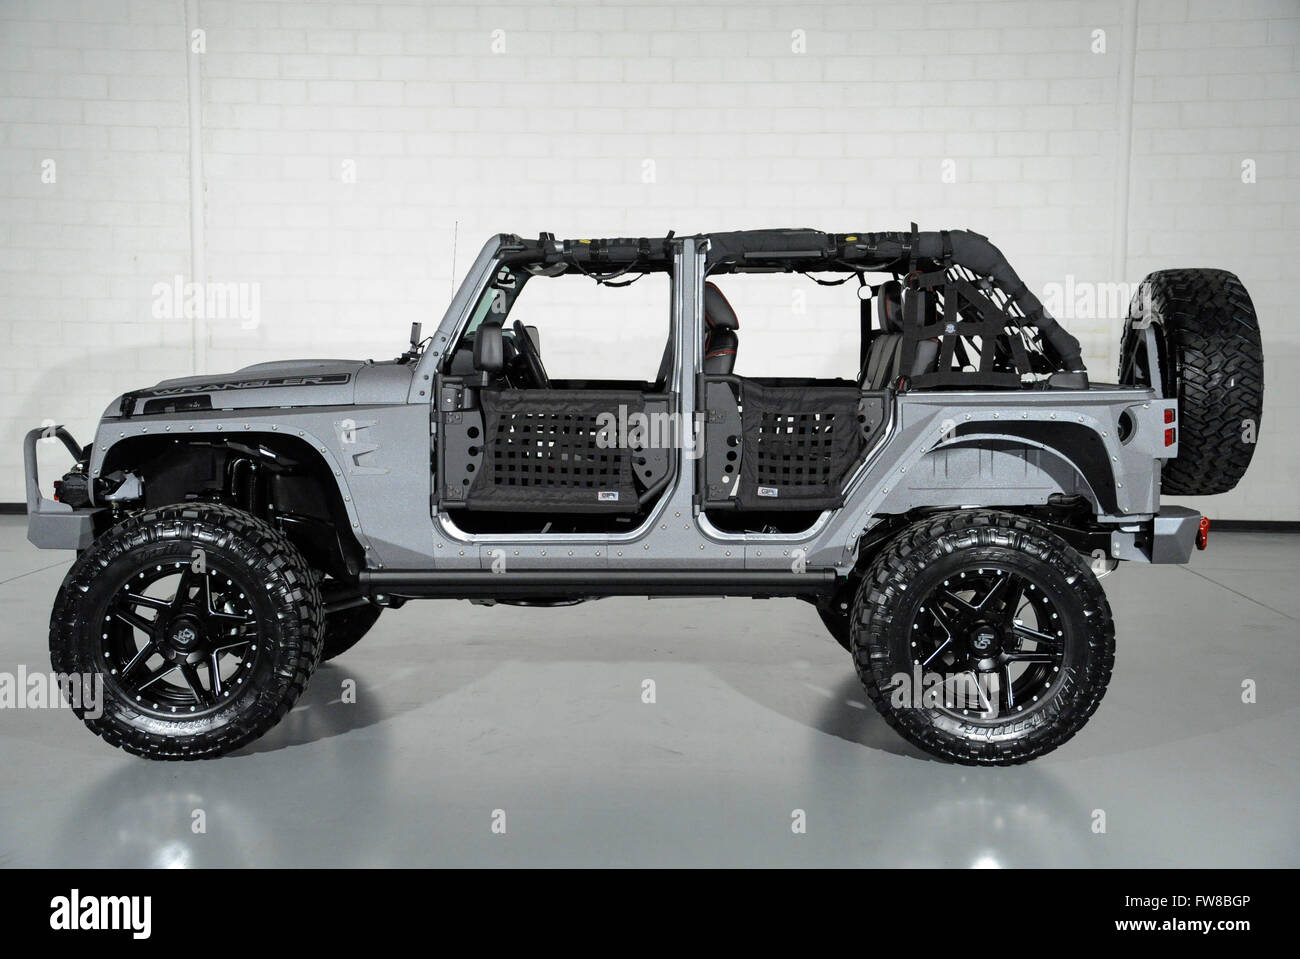 April 1 2016 Custom Jeep Wrangler With Custom Doors And Leather Stock Photo 101602950 Alamy